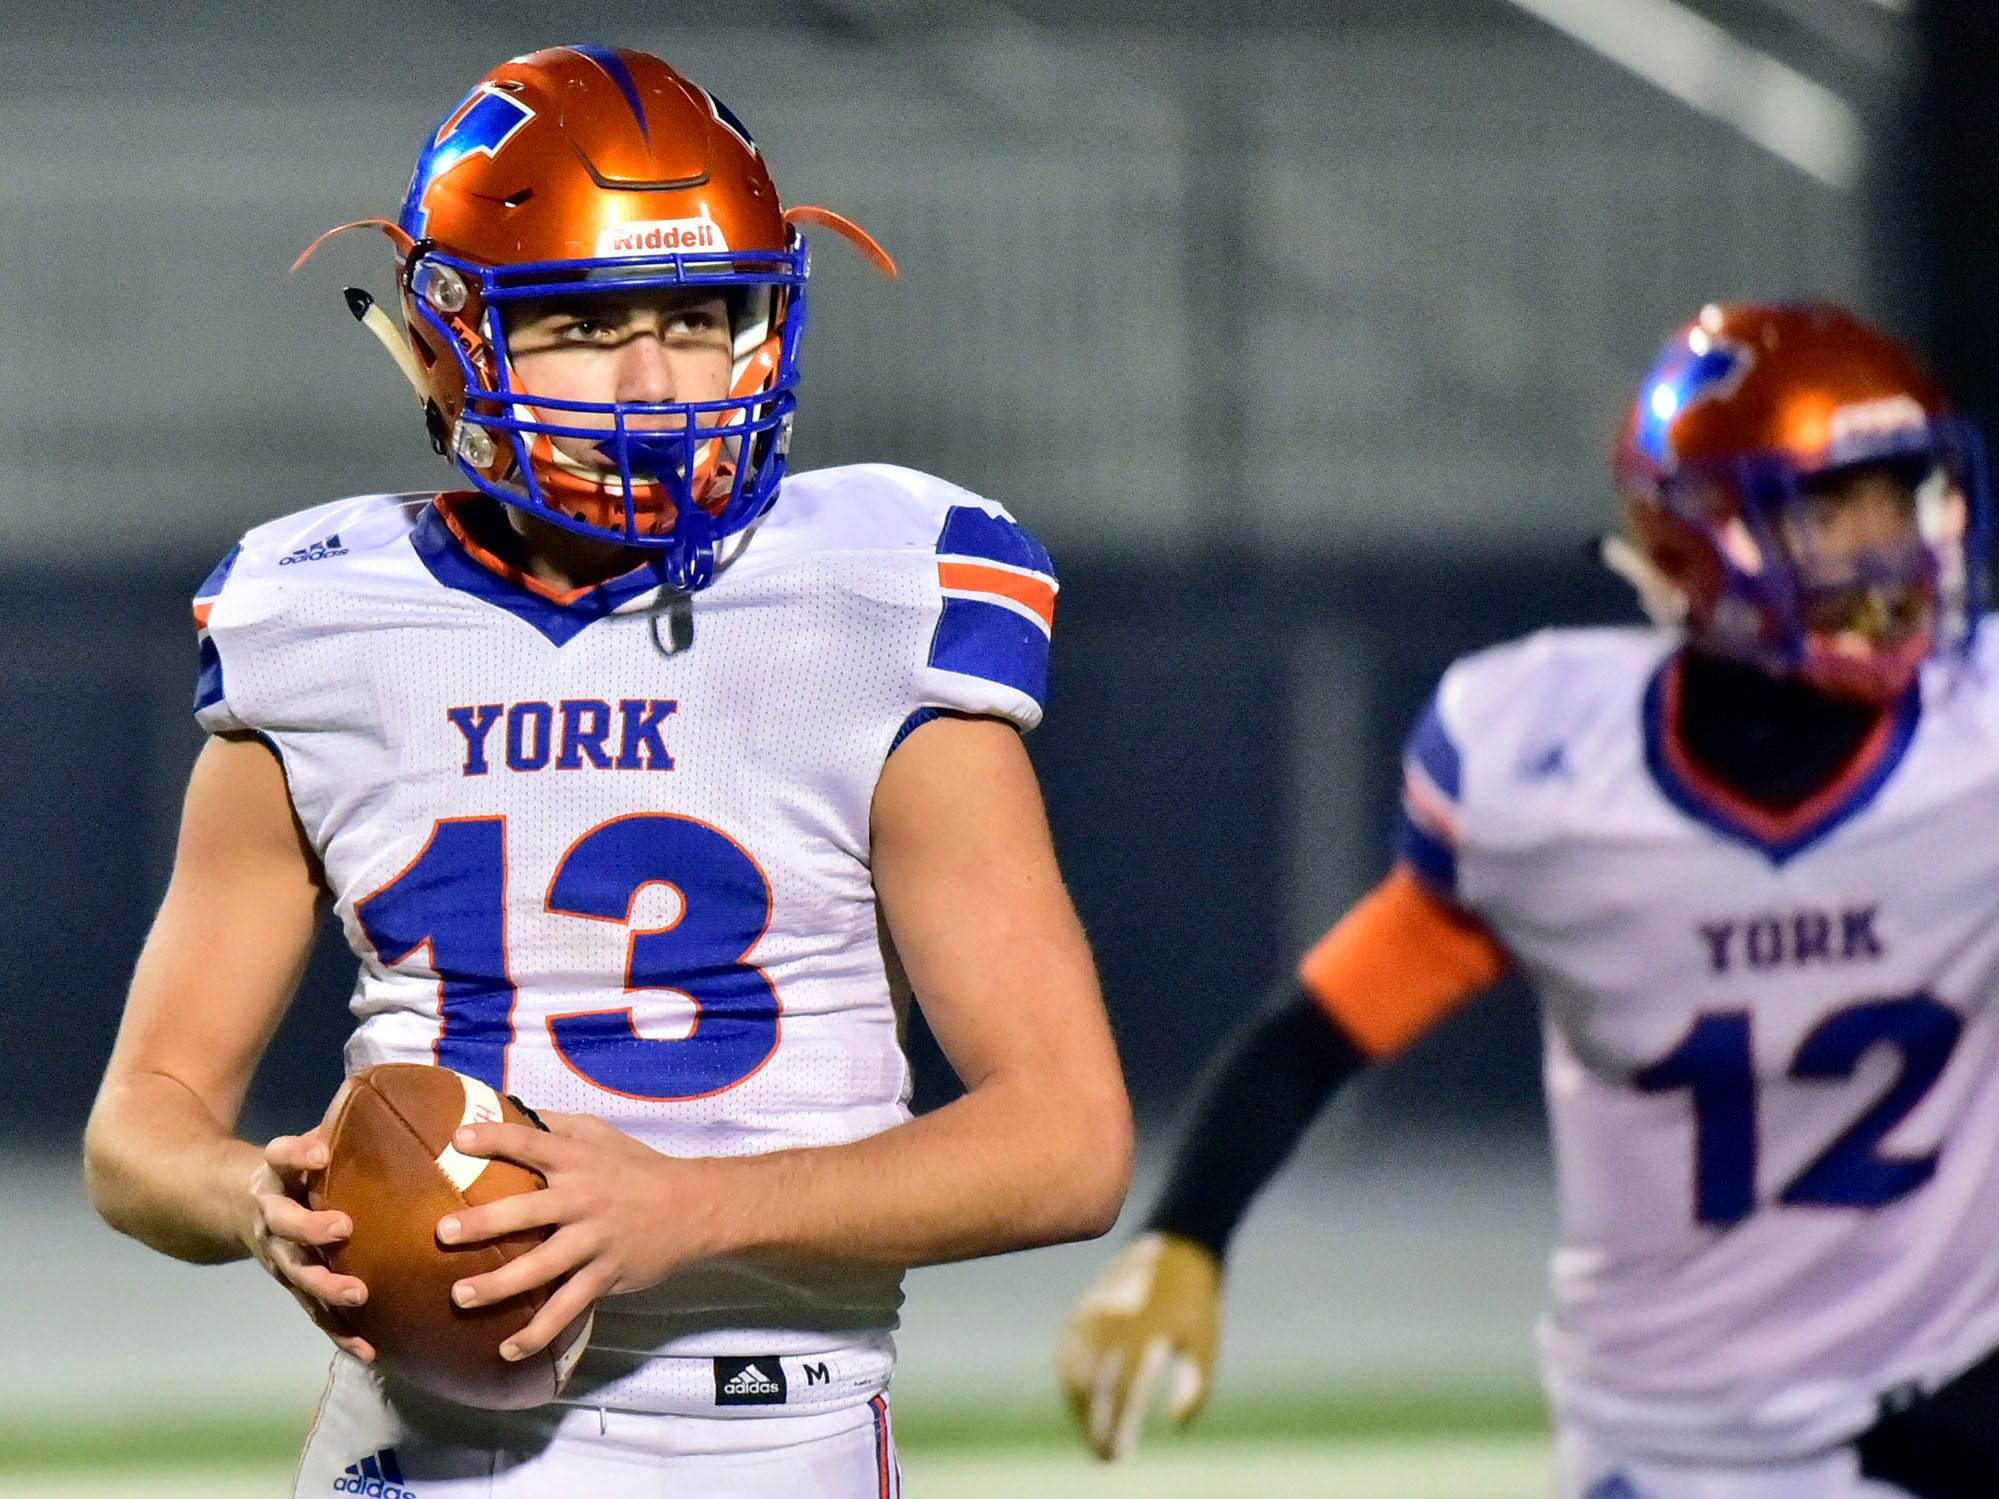 York High's Seth Bernstein closes out a game against Shippensburg. York High defeated Shippensburg 22-6  in the the quarterfinals of PIAA 5A District 3 football playoffs on Friday, Nov. 9, 2018 at Trojan Stadium.